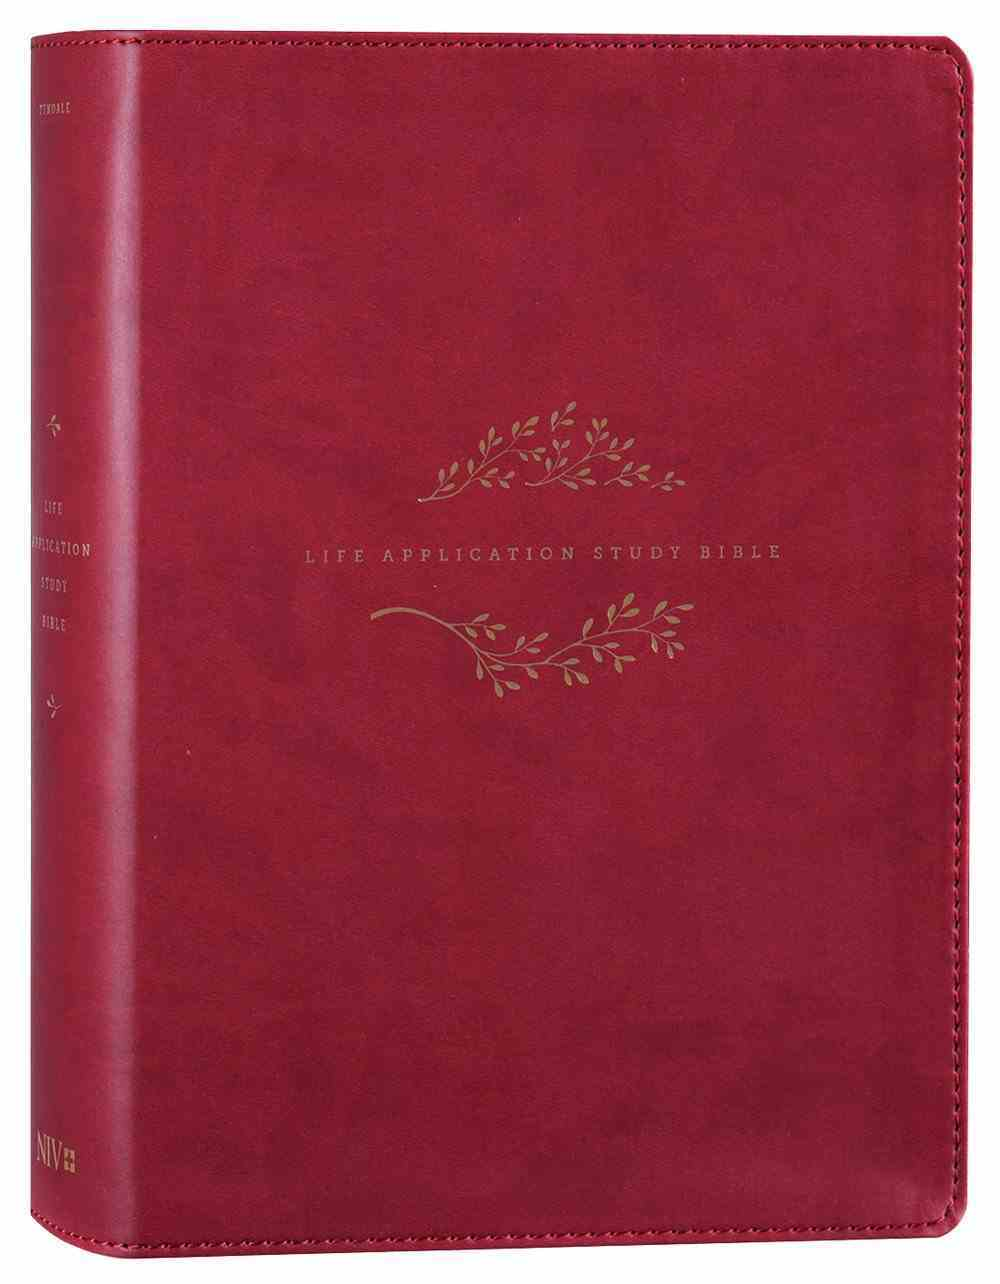 NIV Life Application Study Bible 3rd Edition Berry (Black Letter Edition) Imitation Leather